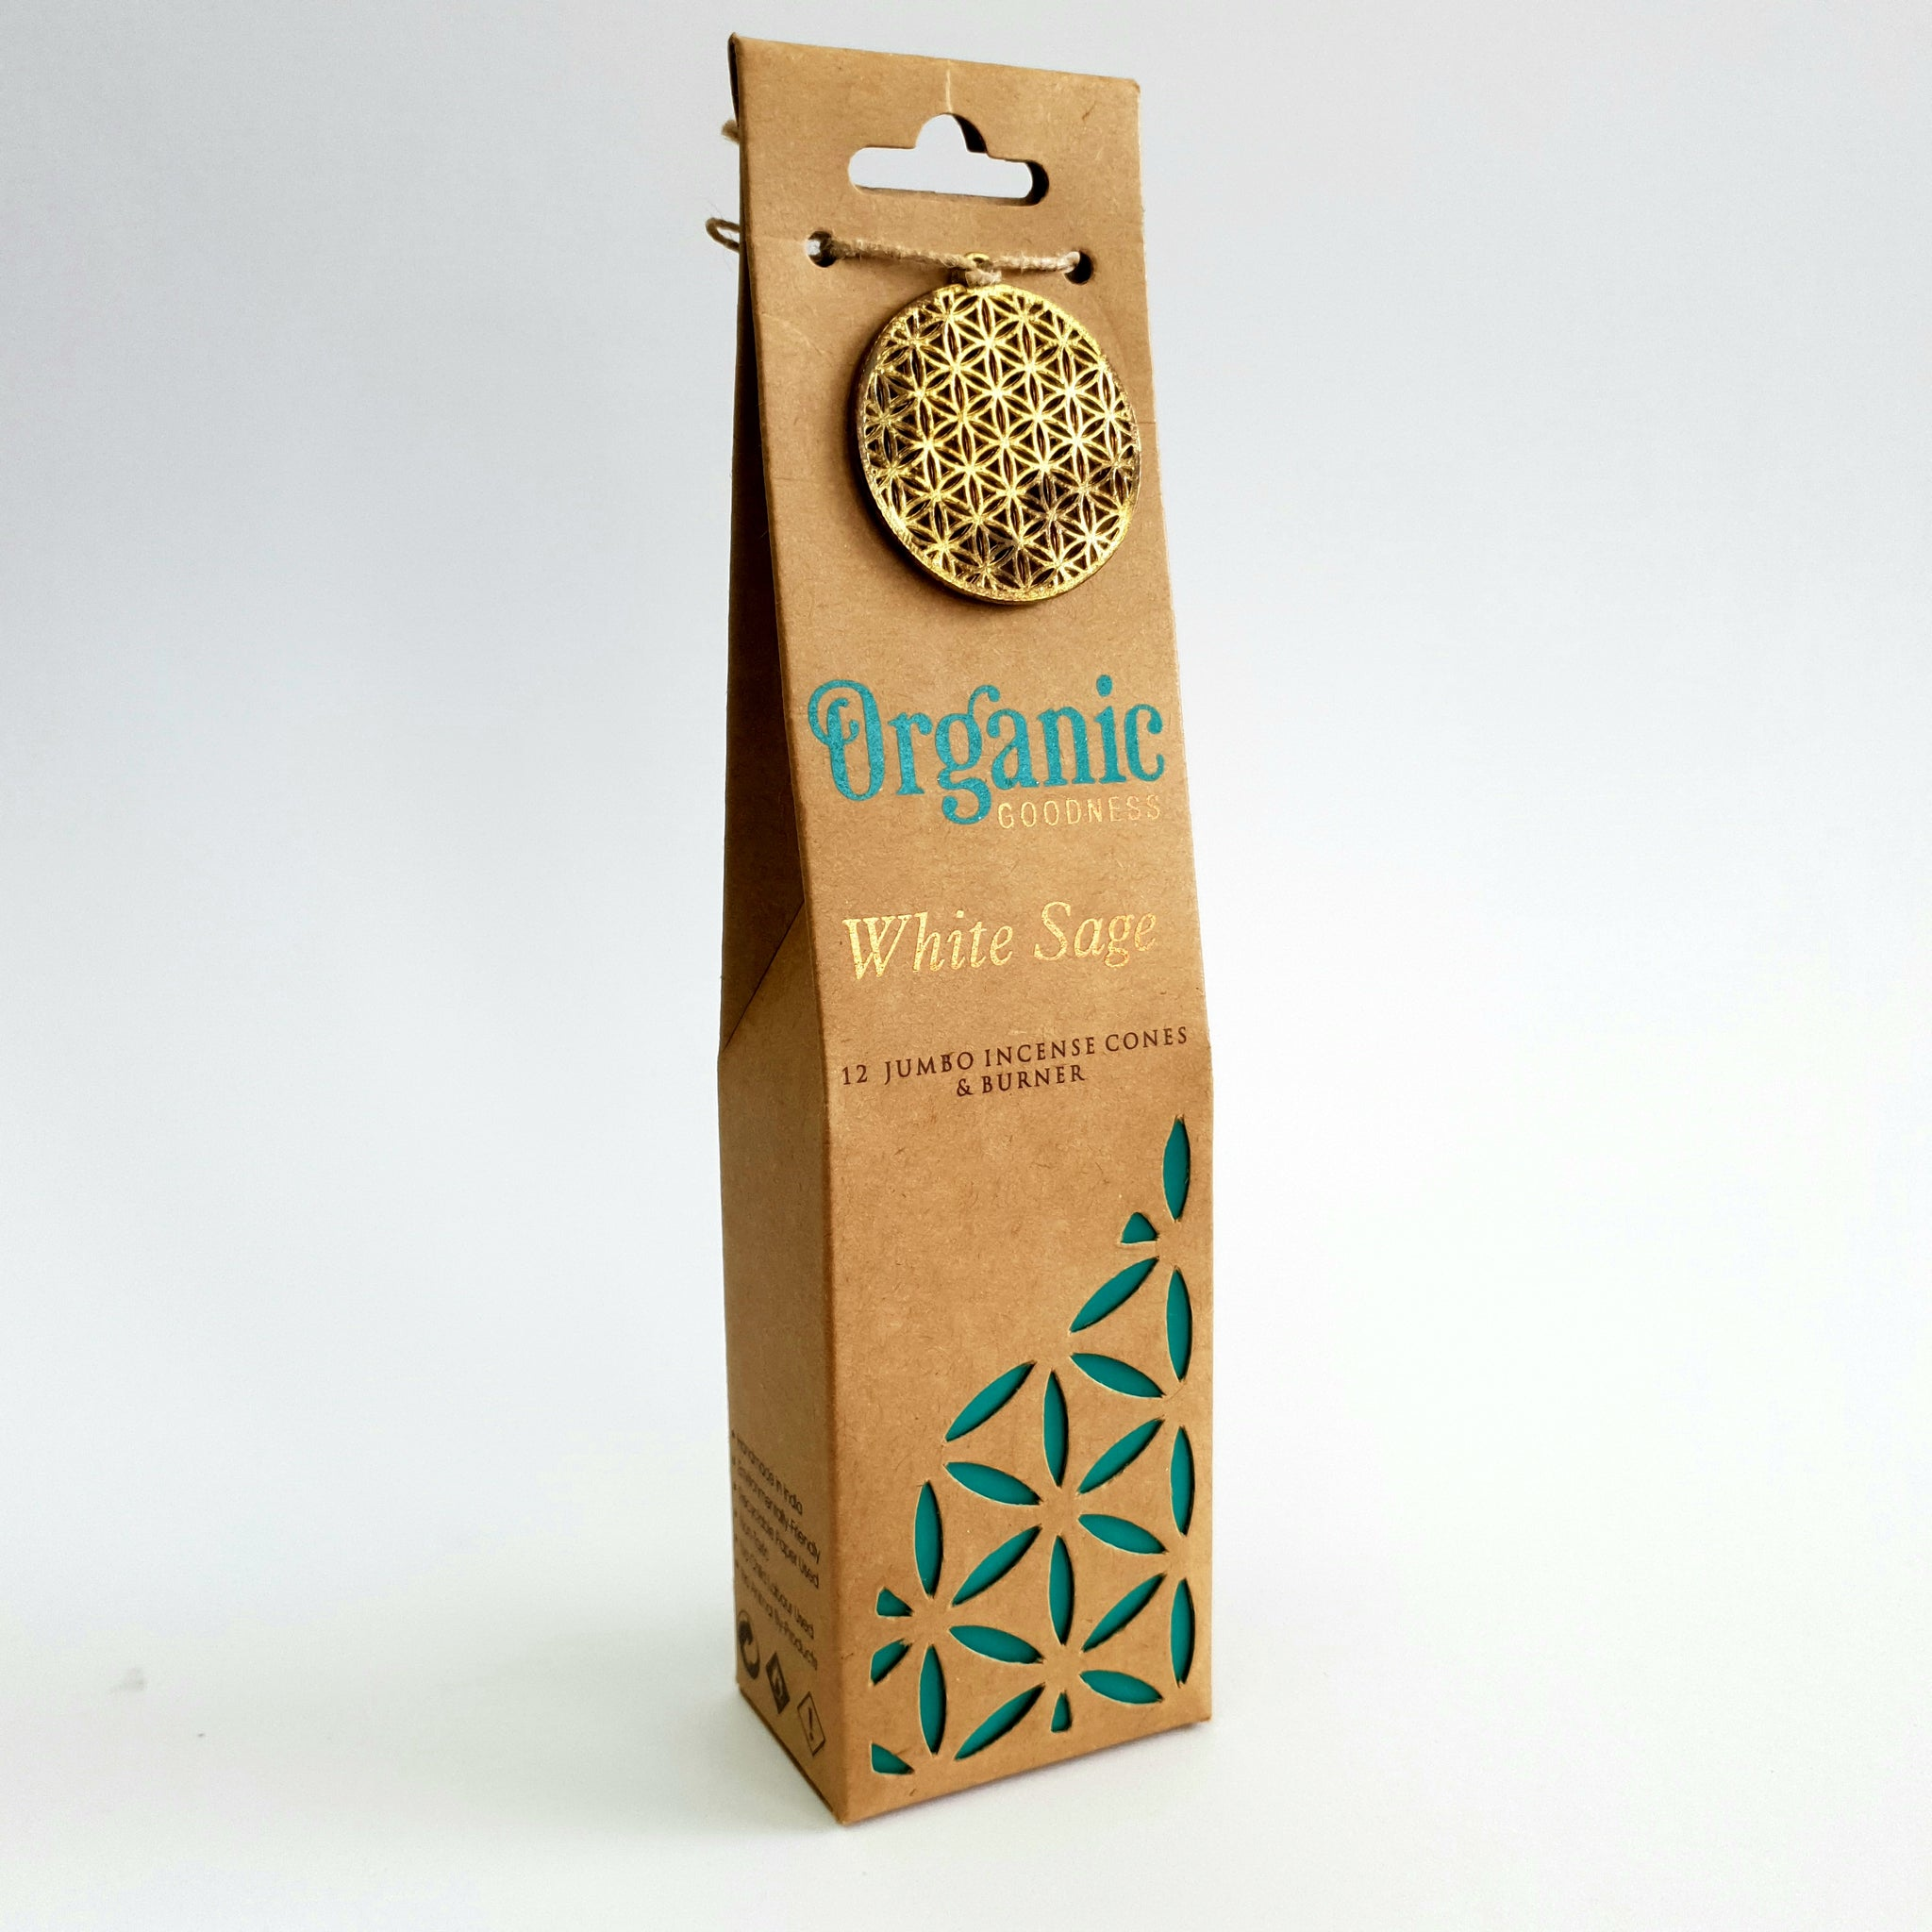 White Sage  - Organic Goodness Masala Incense Cones